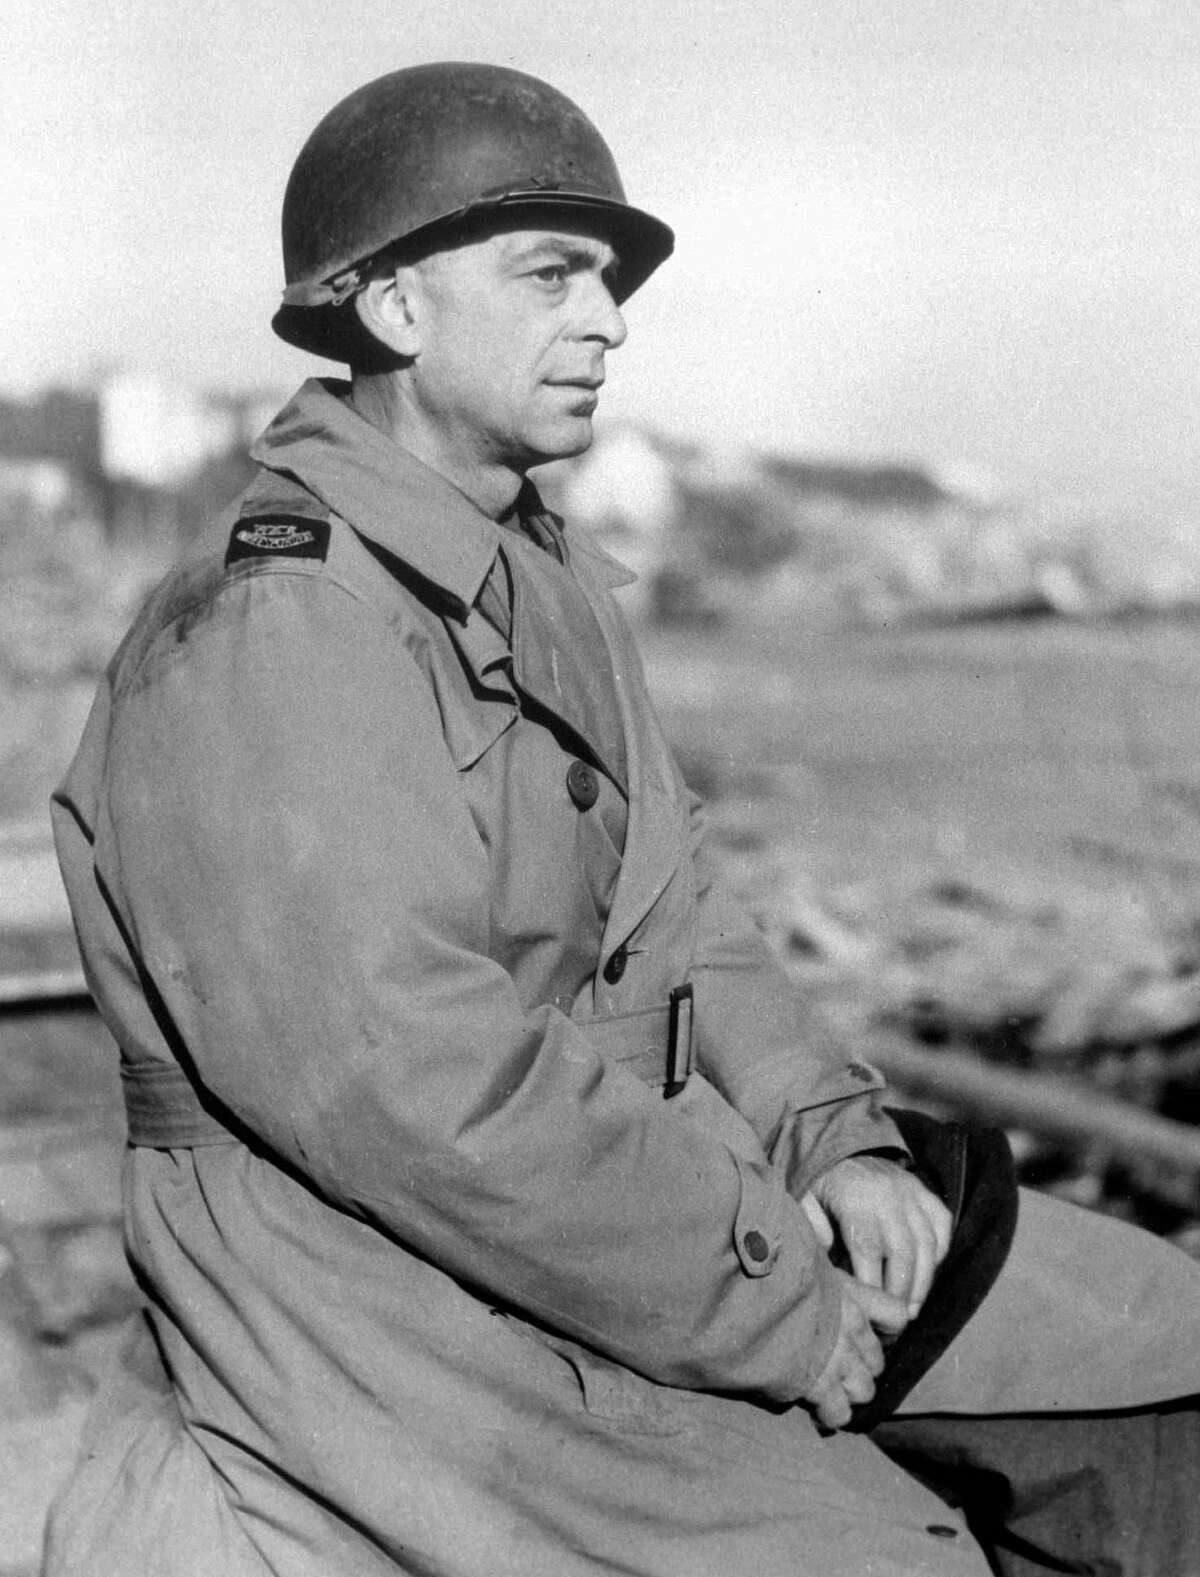 In this March 1, 1944, photo, Ed Kennedy, chief of The Associated Press staff in North Africa, wears a metal helmet at the Anzio beachhead in Italy.